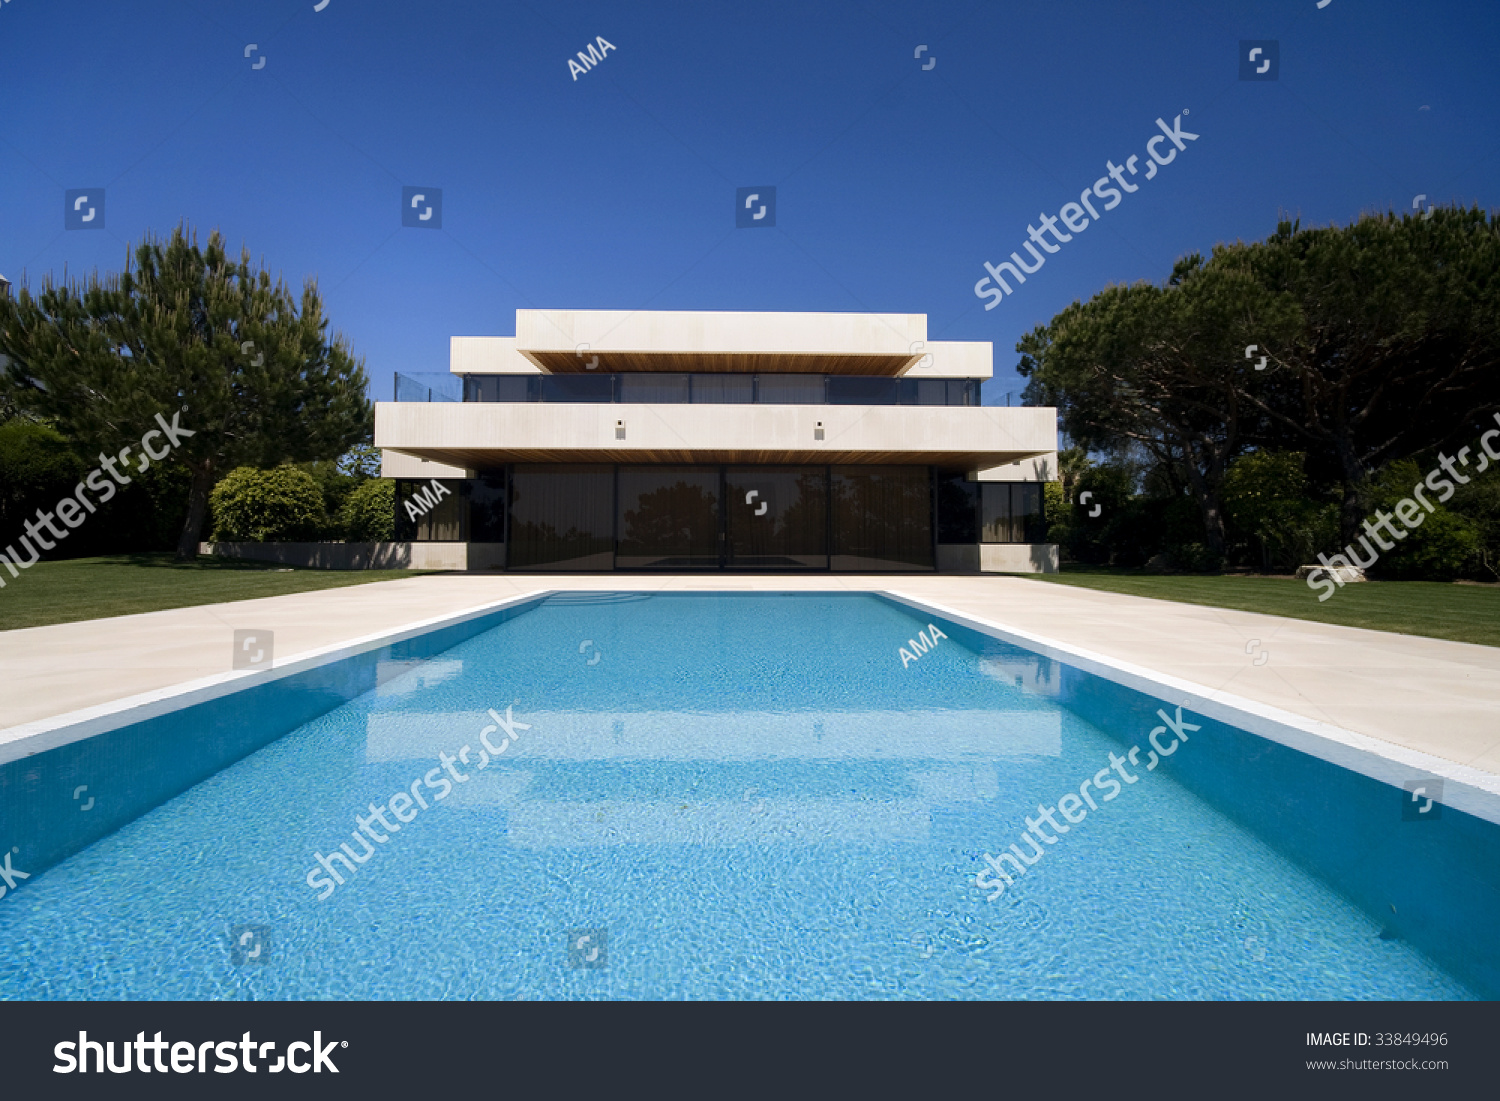 A Luxury Modern House With A Big Swimmingpool  Lifestyle .